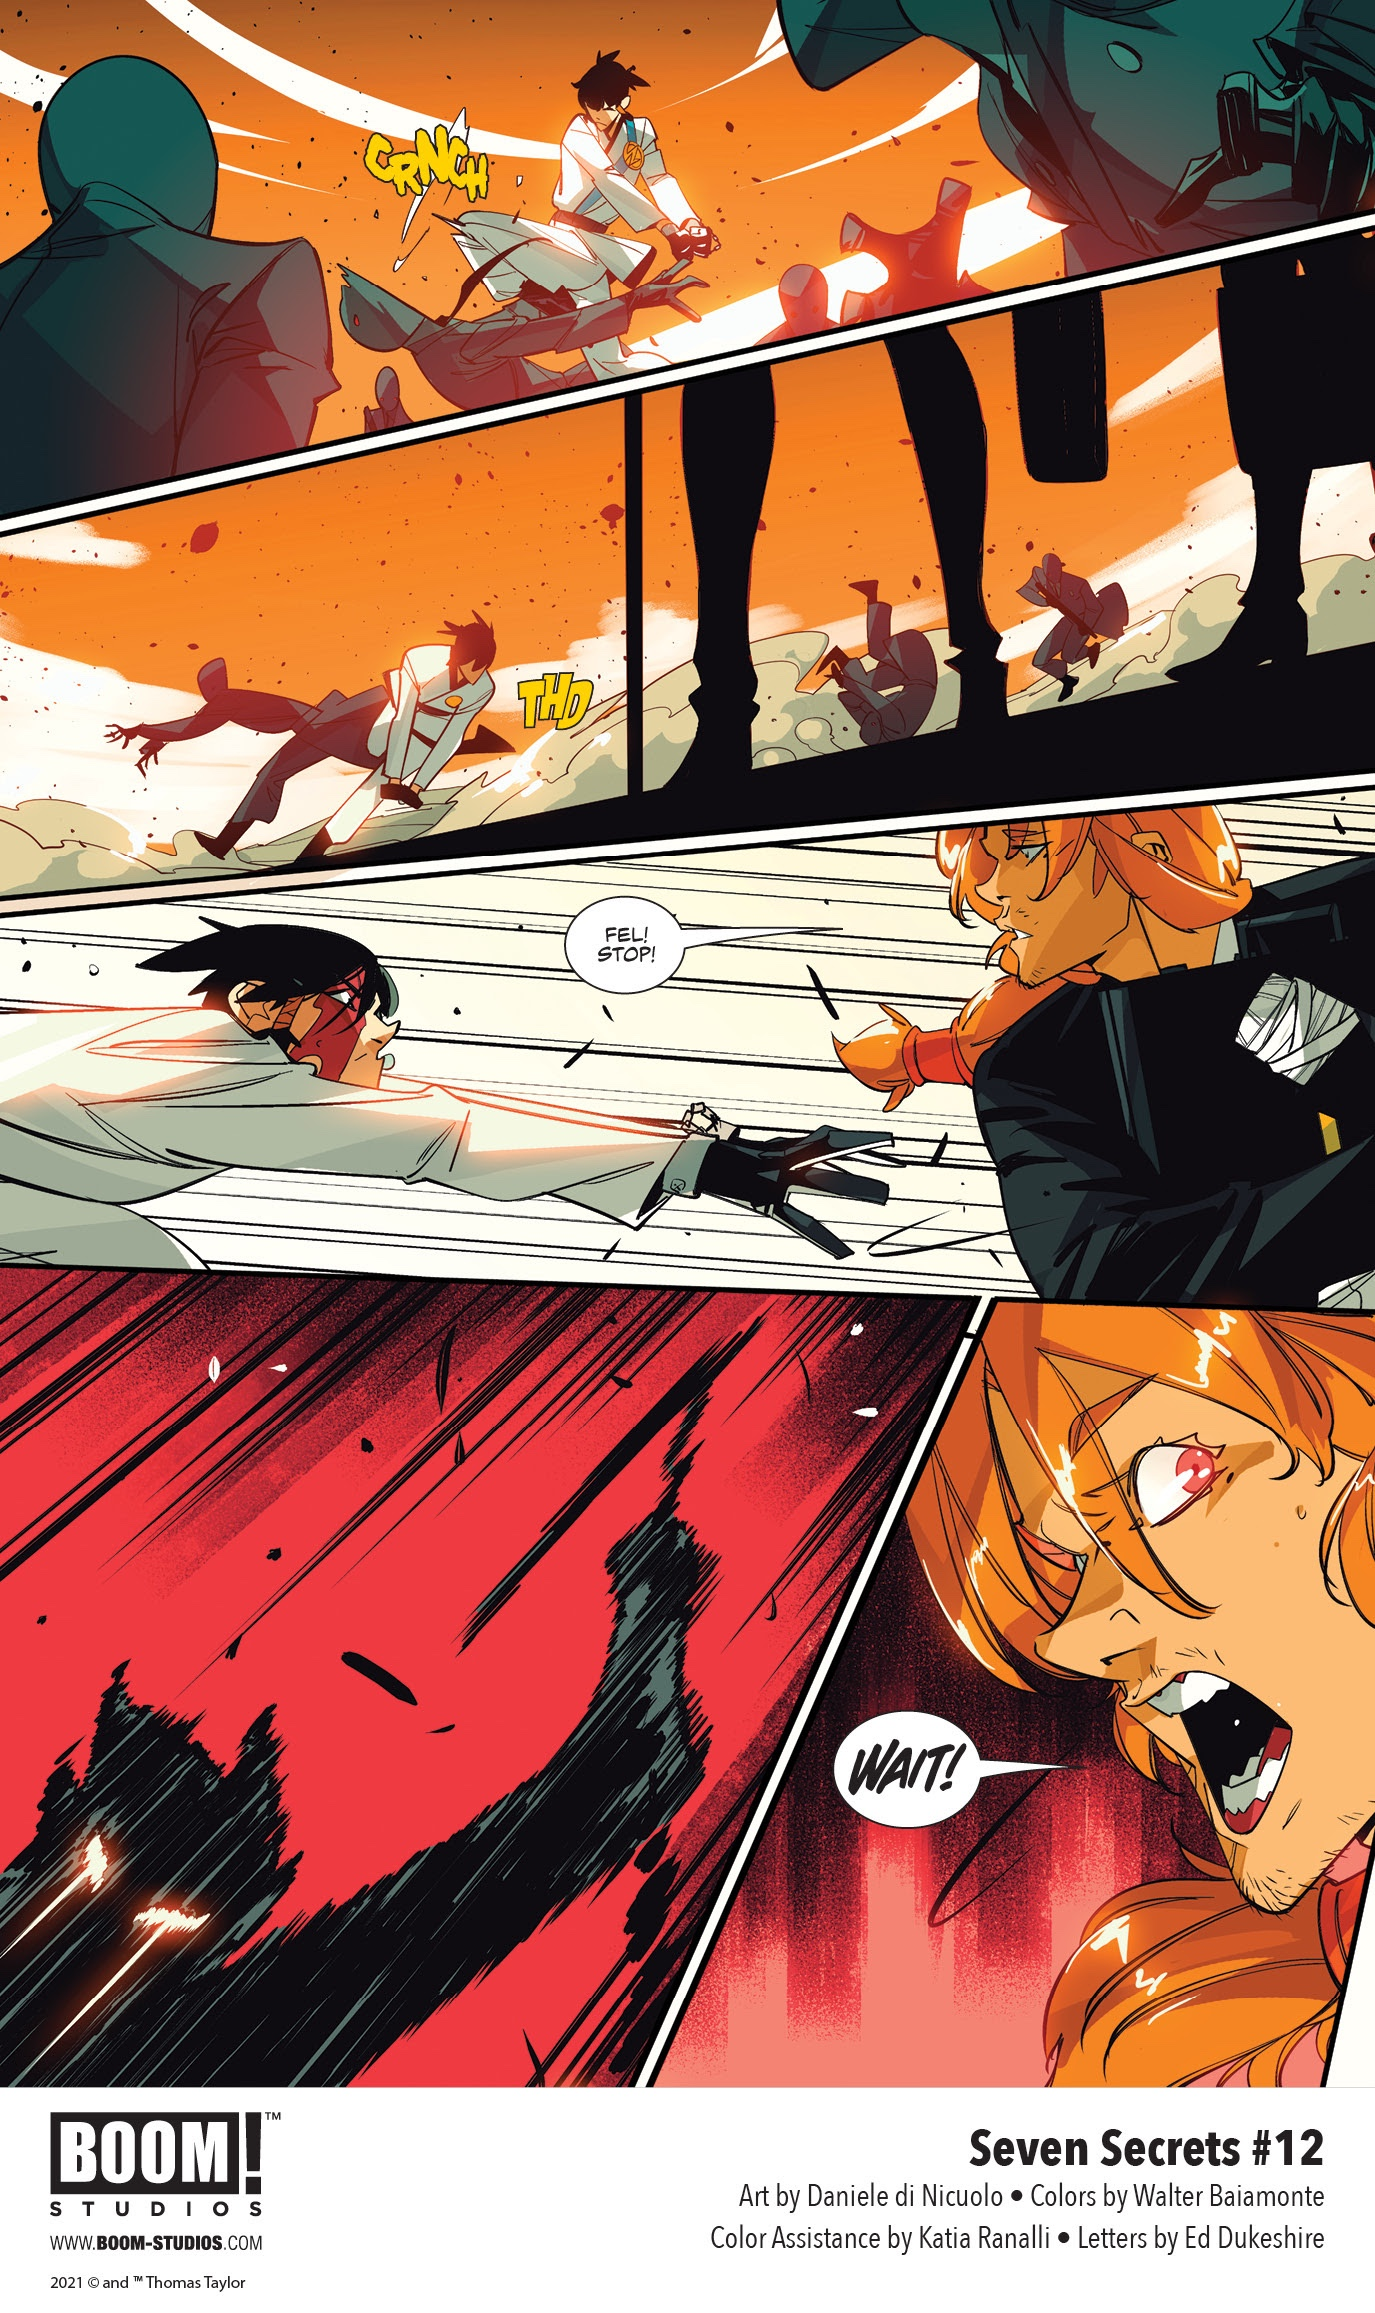 , Eva's Dangerous Discovery Changes Everything in SEVEN SECRETS #12, The Indie Comix Dispatch